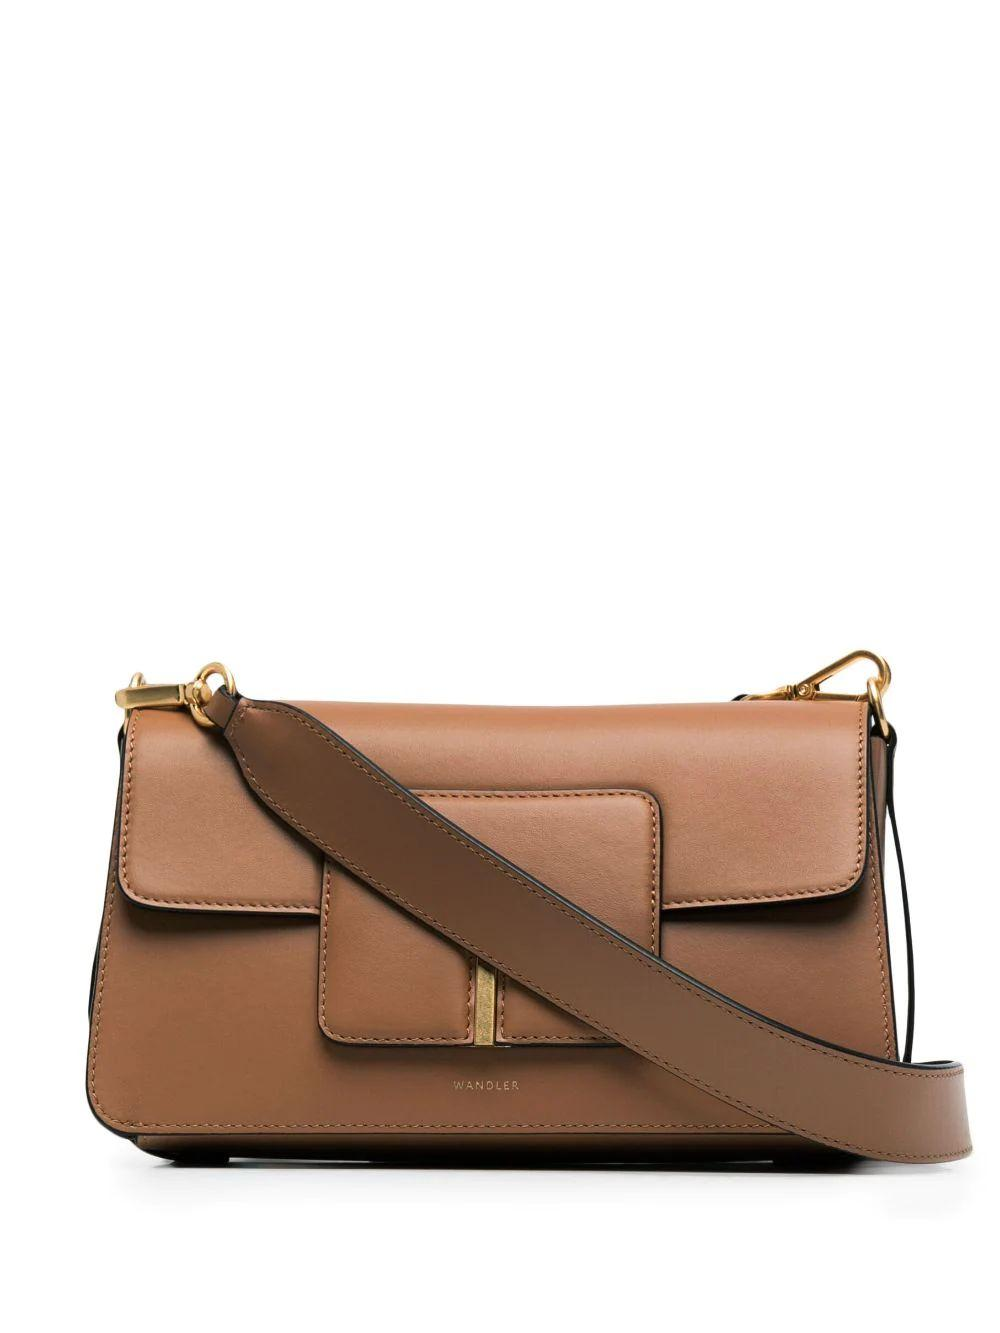 Georgia Shoulder Bag